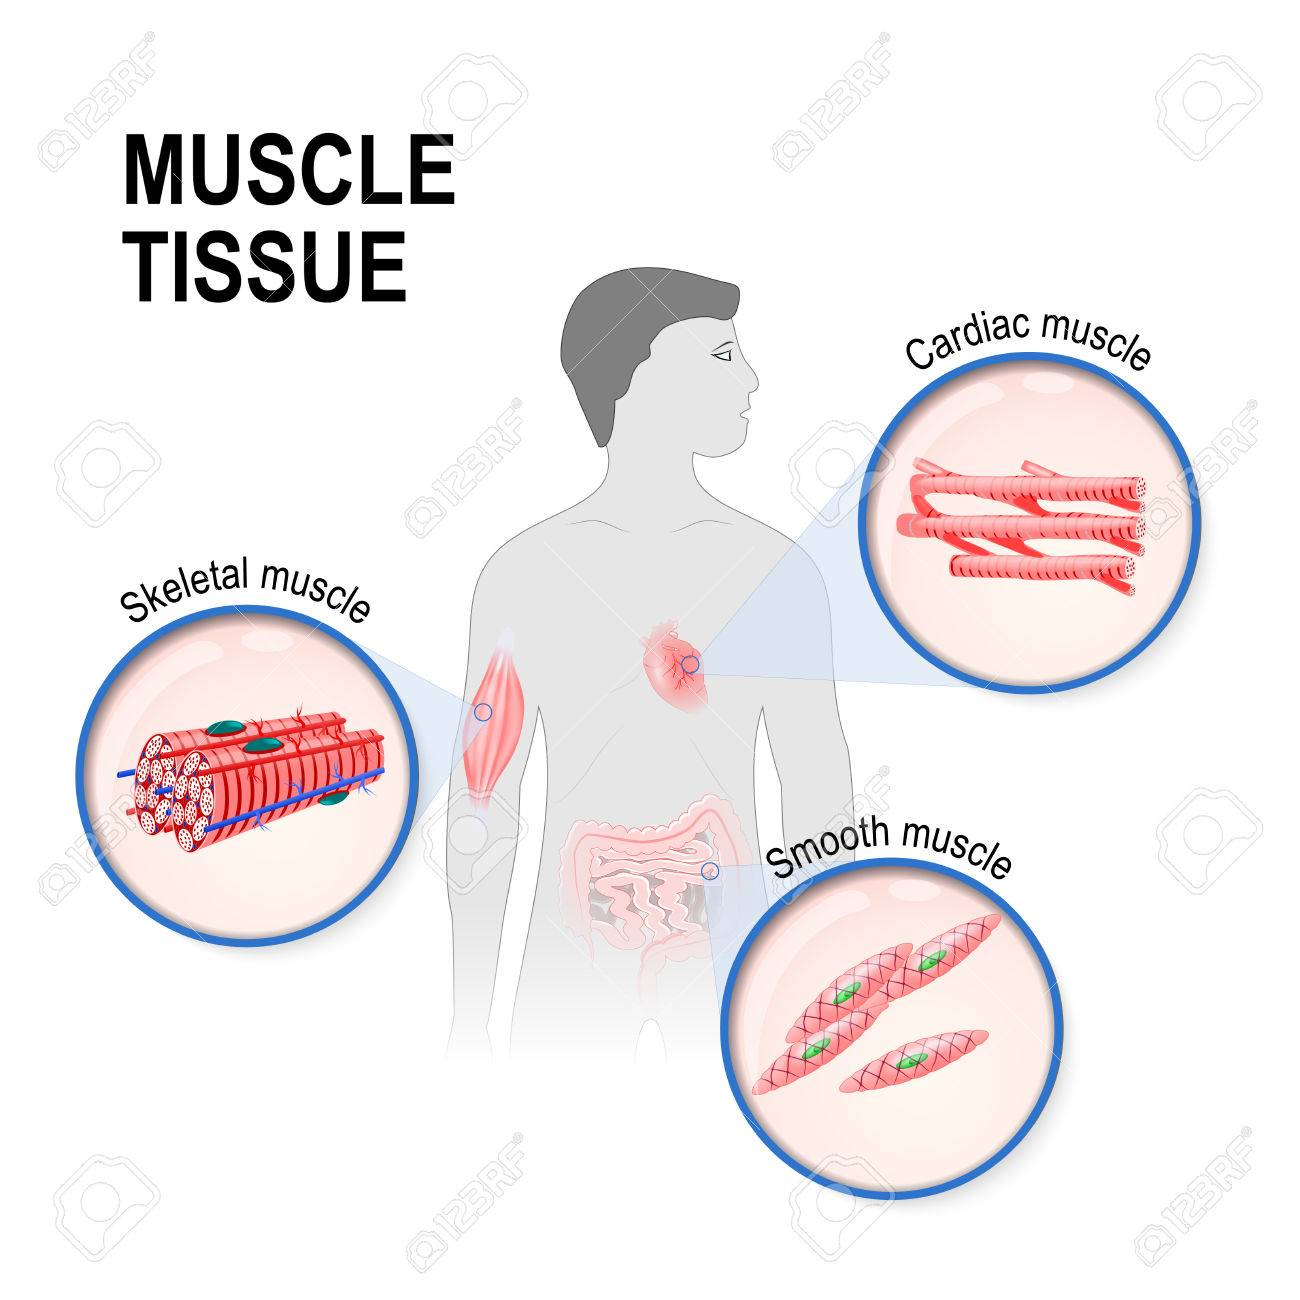 hight resolution of types of muscle tissue skeletal smooth and cardiac muscle silhouette of a man